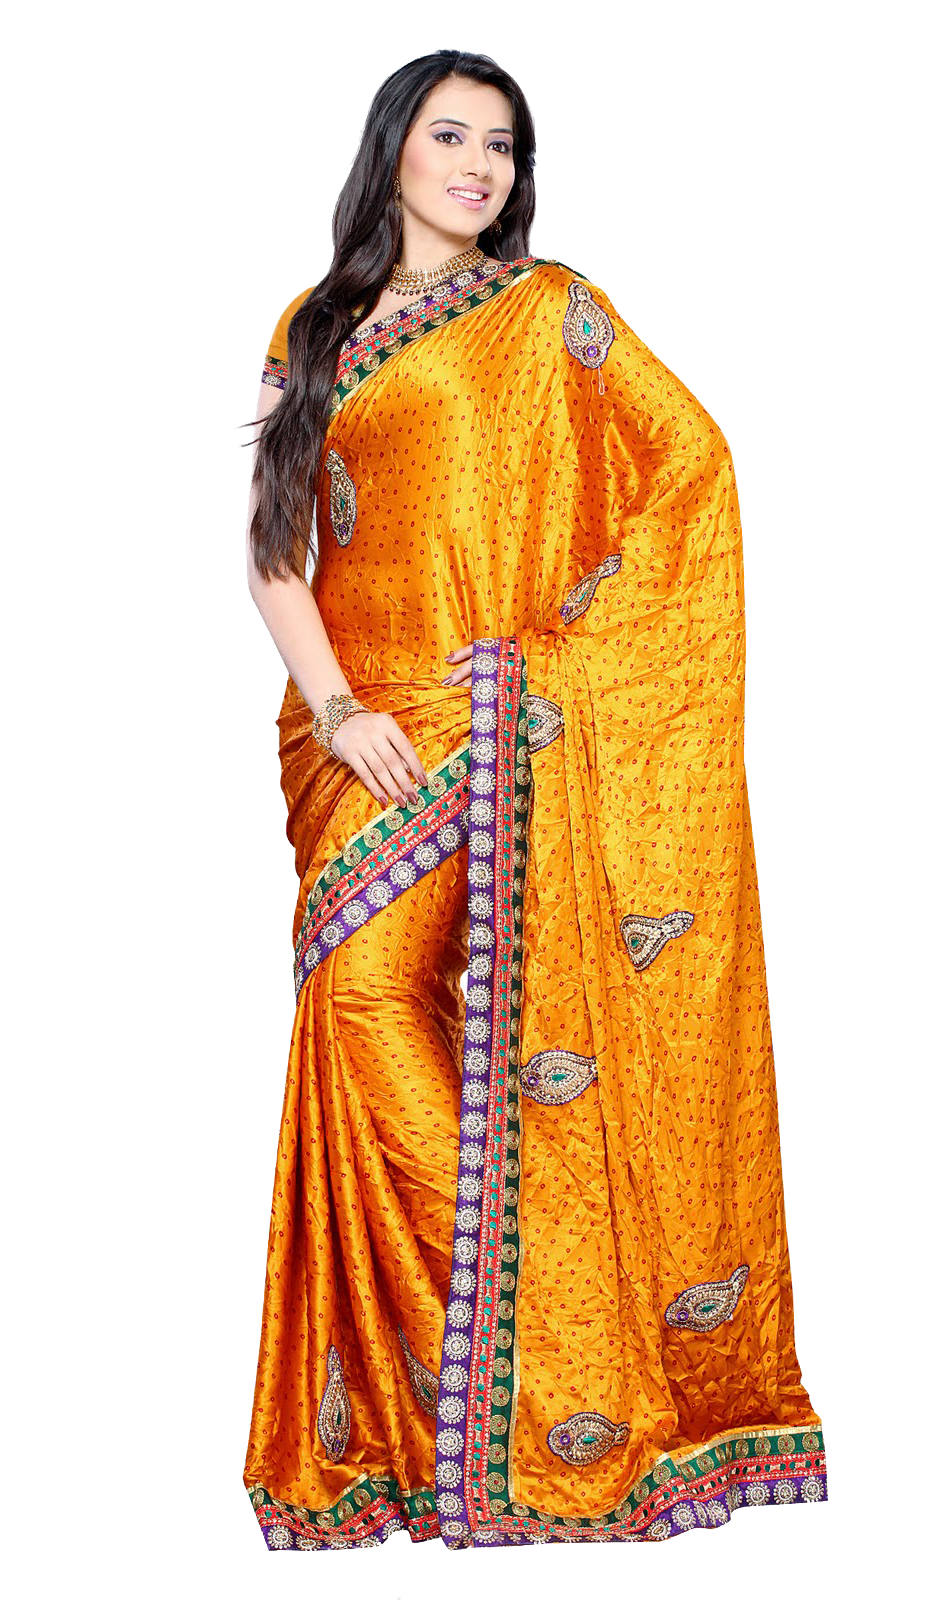 indian saree model png file by theartist100 resources stock images ...